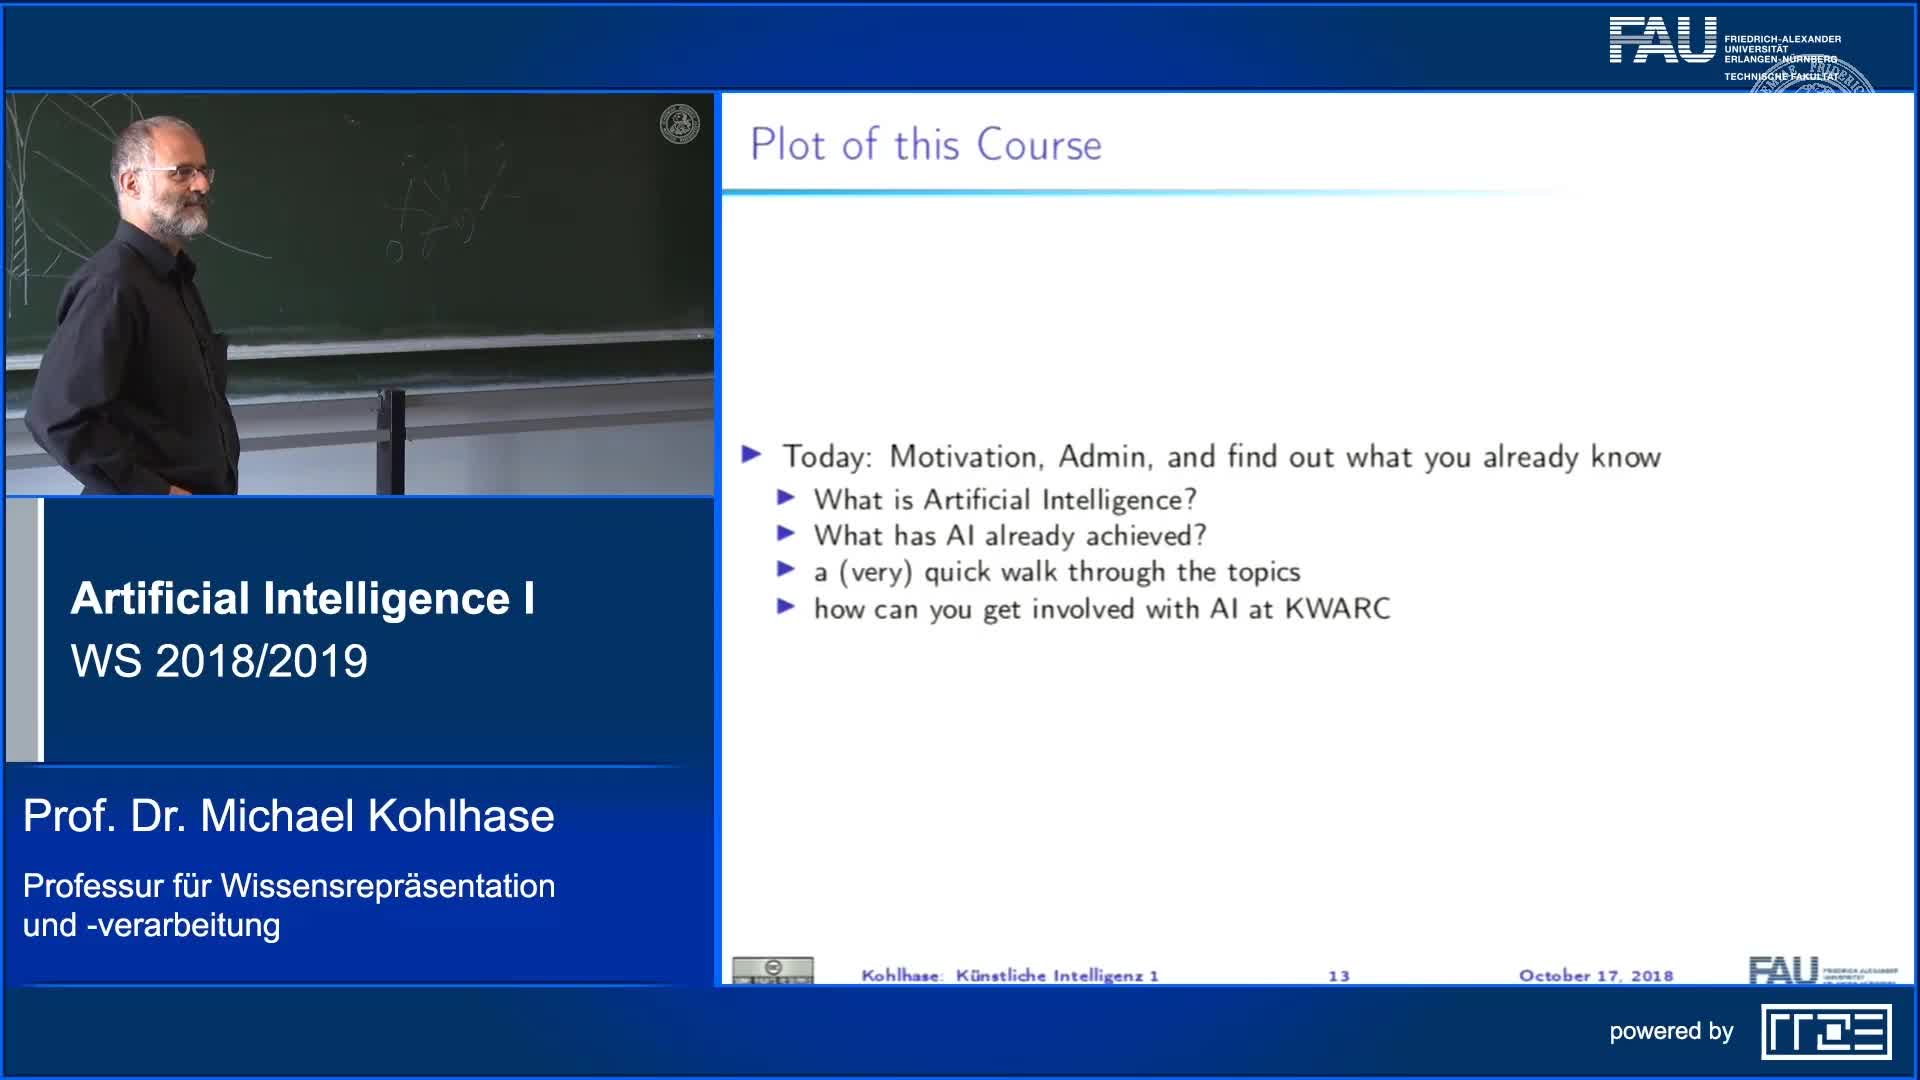 Plot of this Course preview image